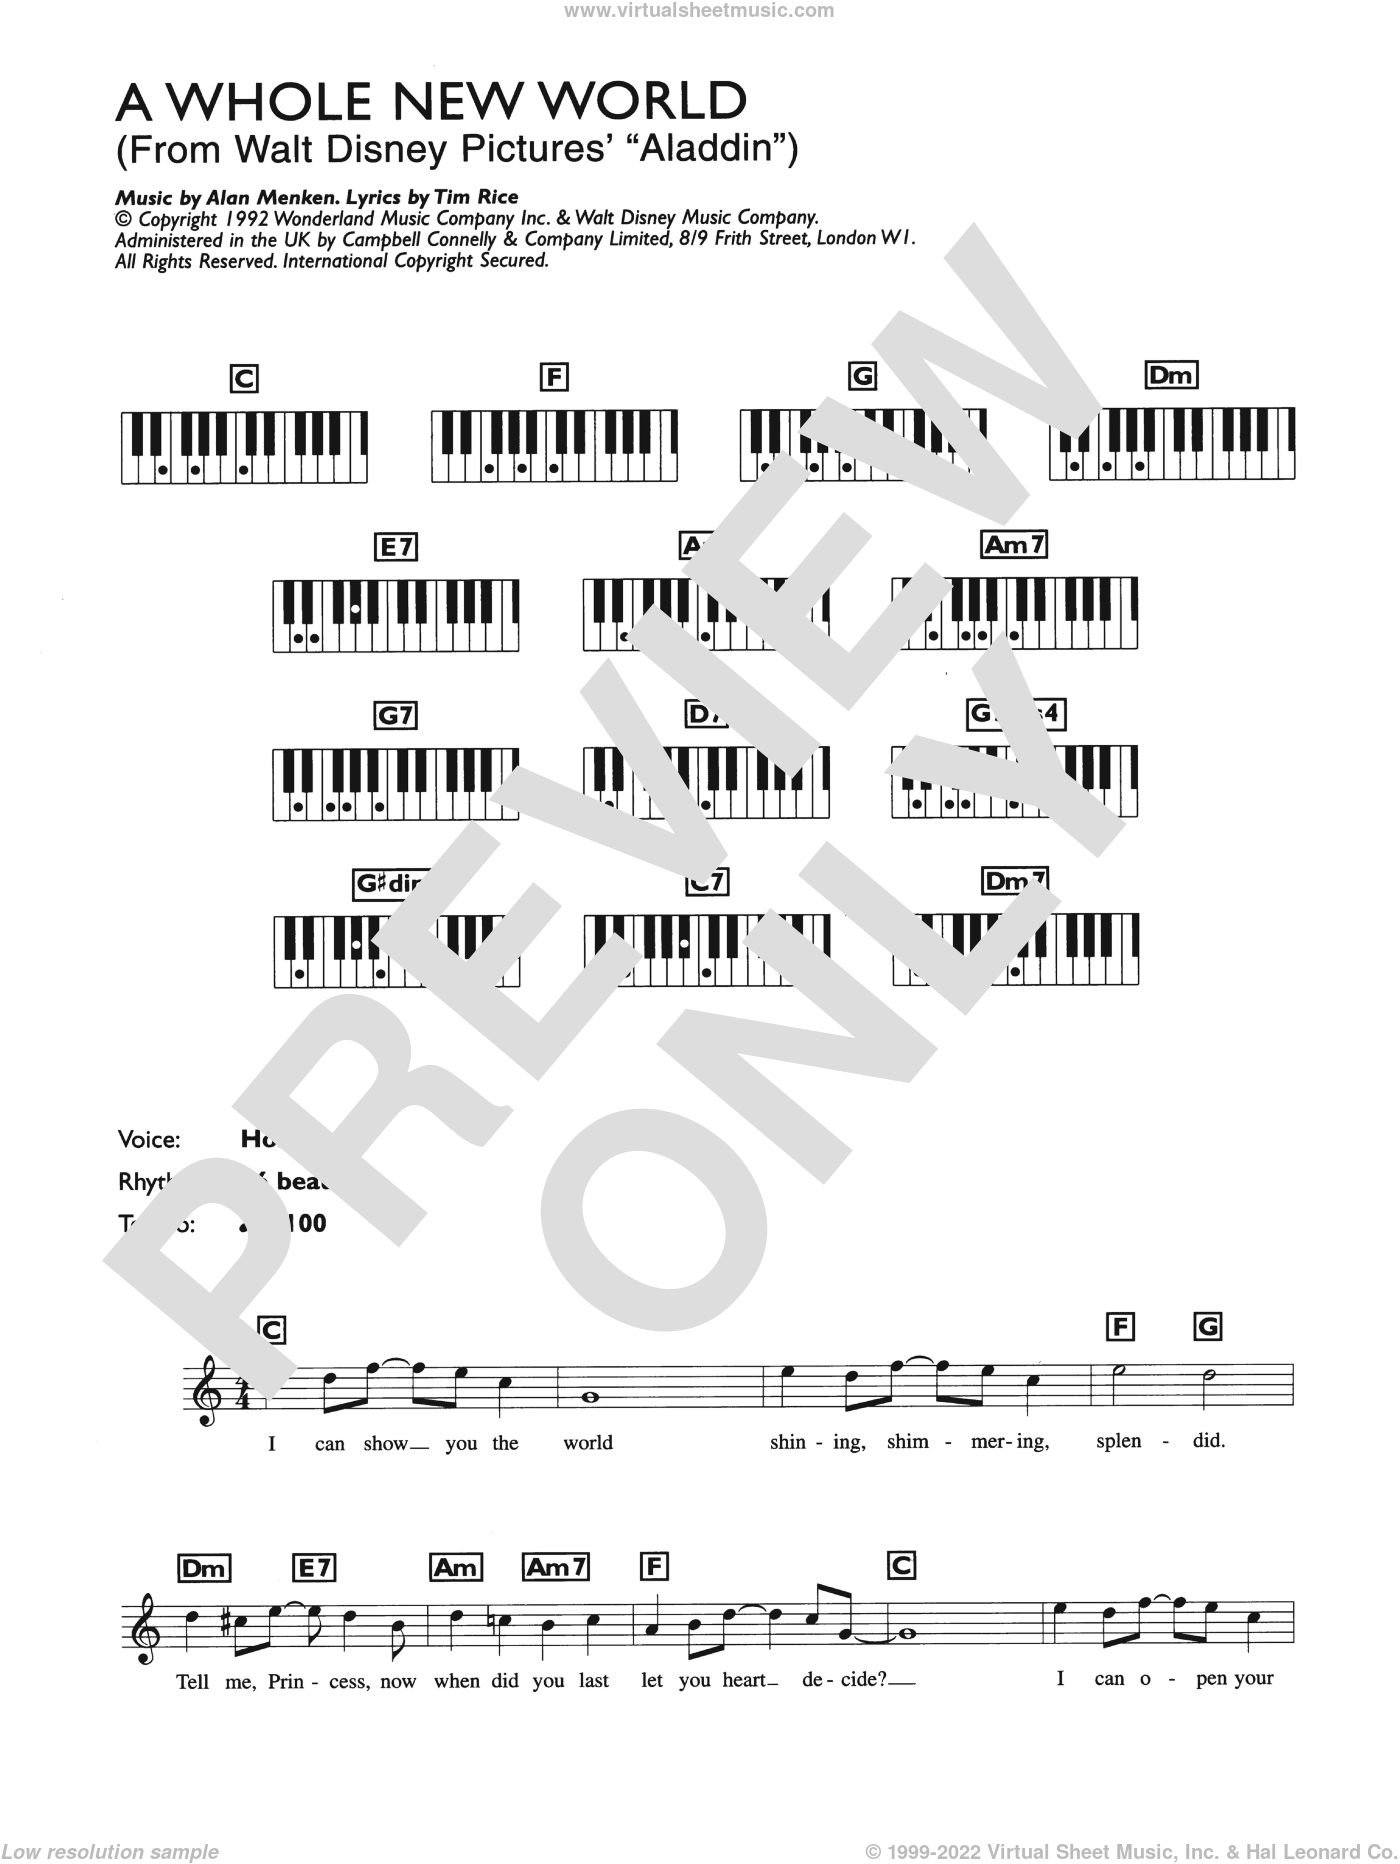 A Whole New World (from Aladdin) sheet music for piano solo (chords, lyrics, melody) by Tim Rice and Alan Menken. Score Image Preview.